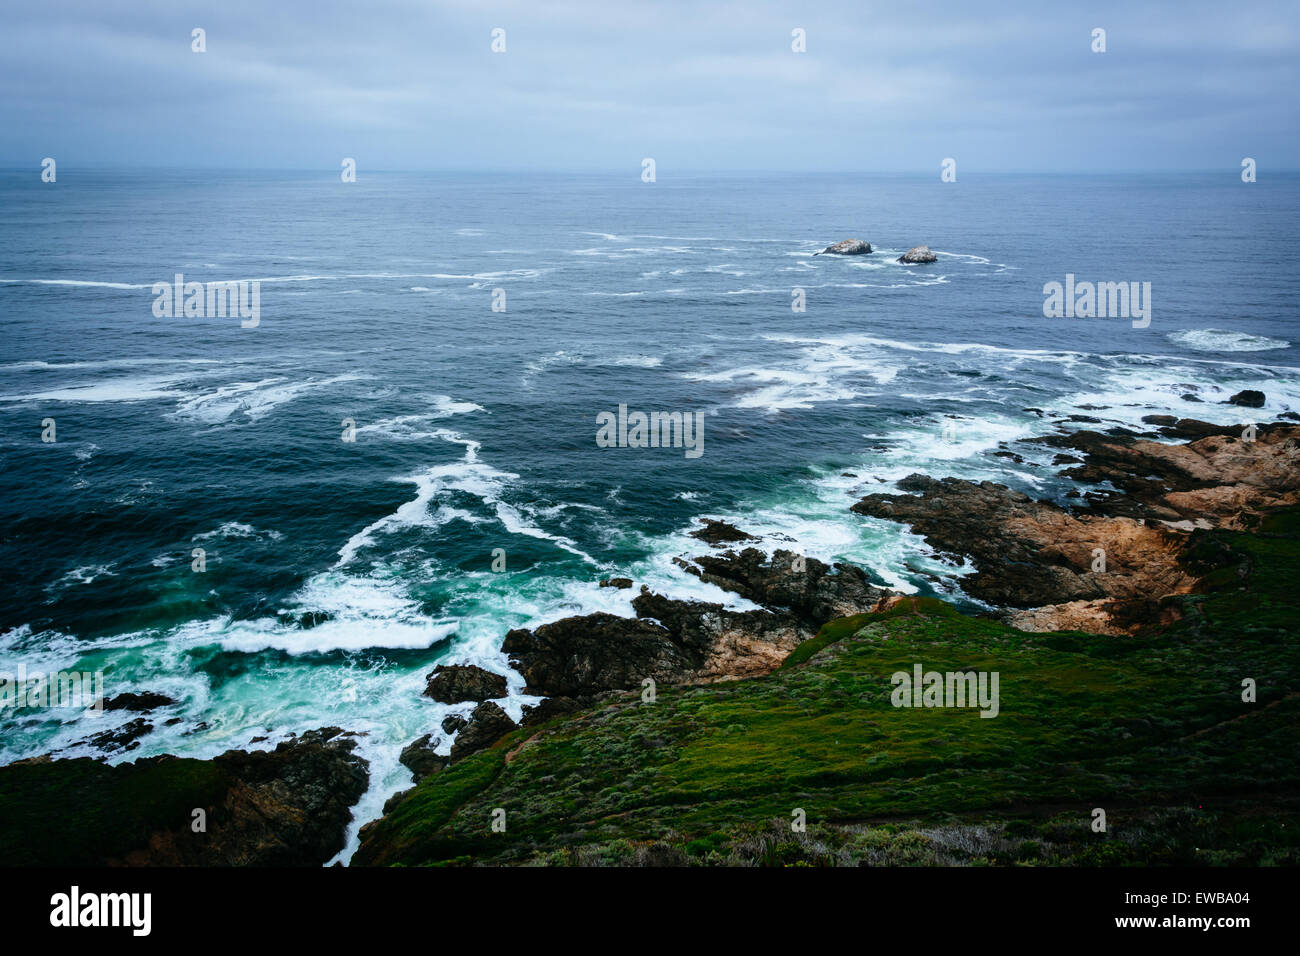 View of the Pacific Ocean from cliffs at Garrapata State Park, California. Stock Photo